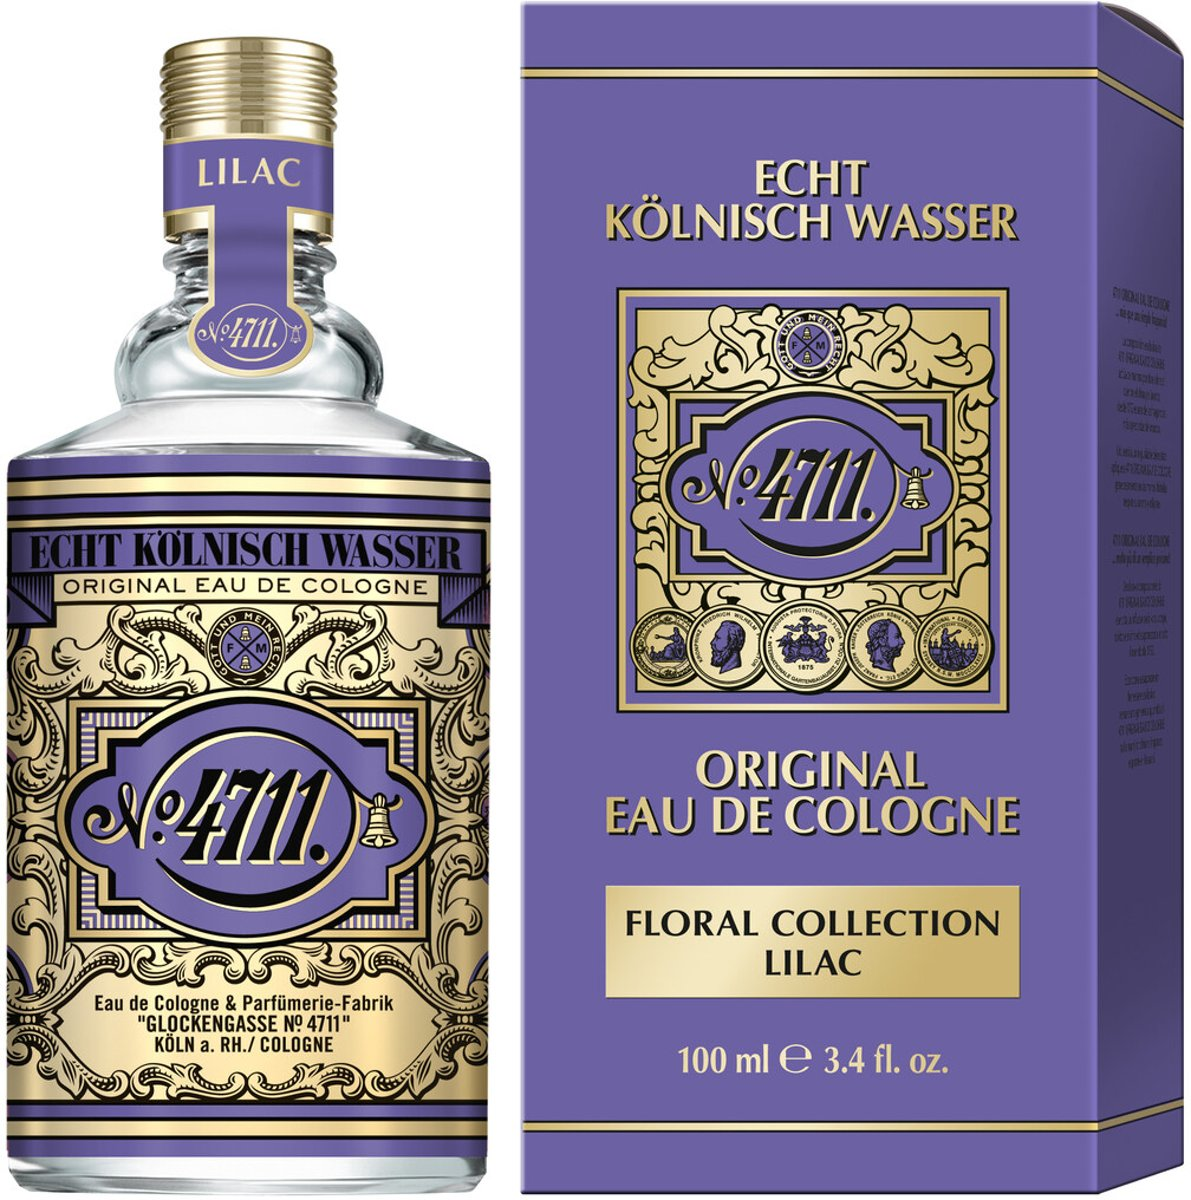 4711 Floral Collection Lilac (sering) eau de cologne 100 ml